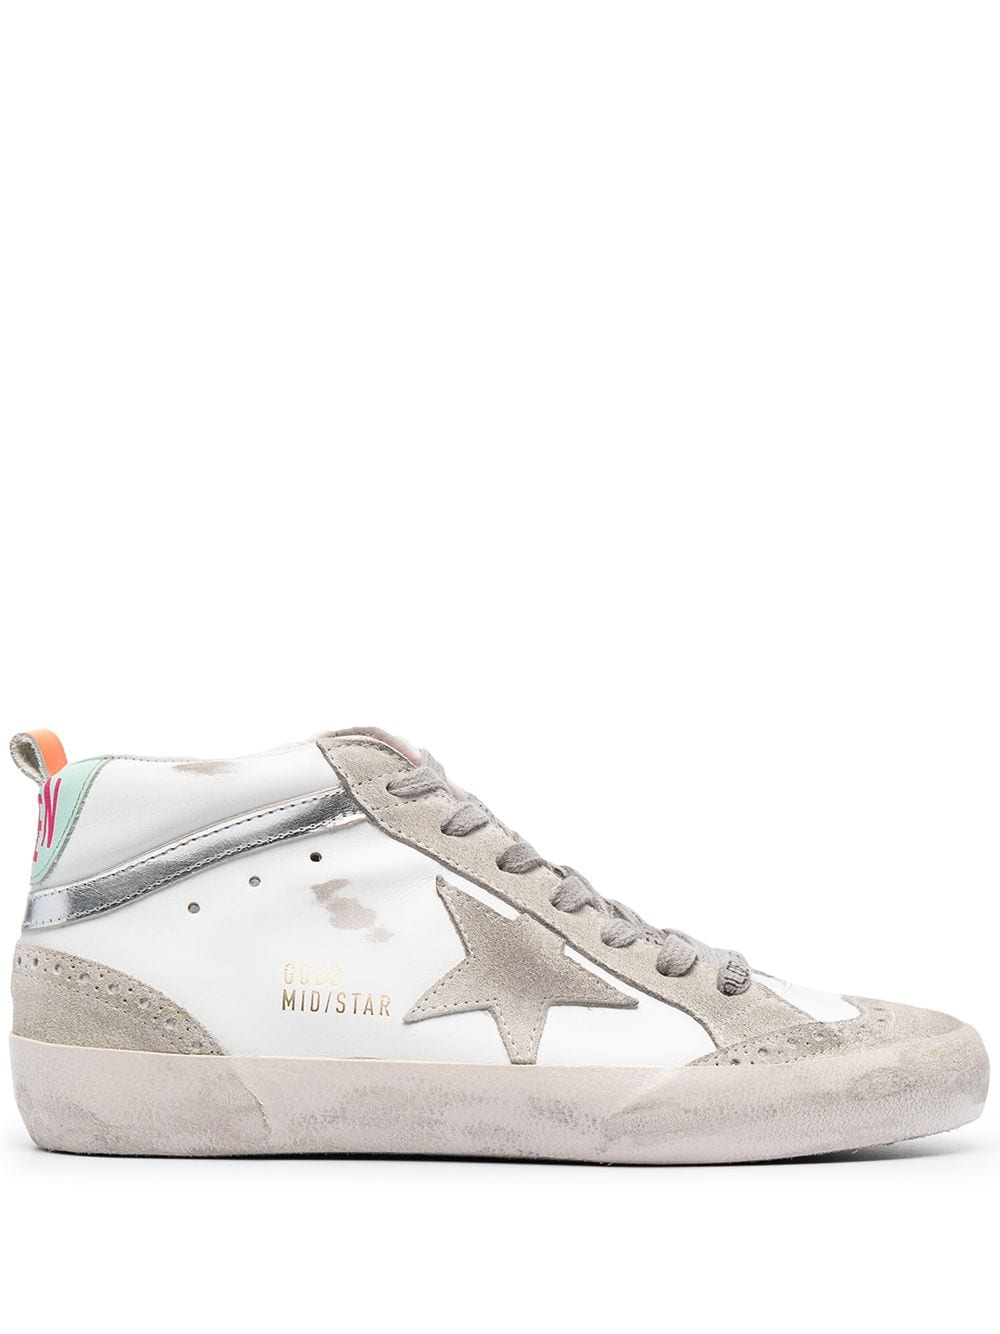 Picture of Golden Goose Deluxe Brand | Mid Star Sneakers